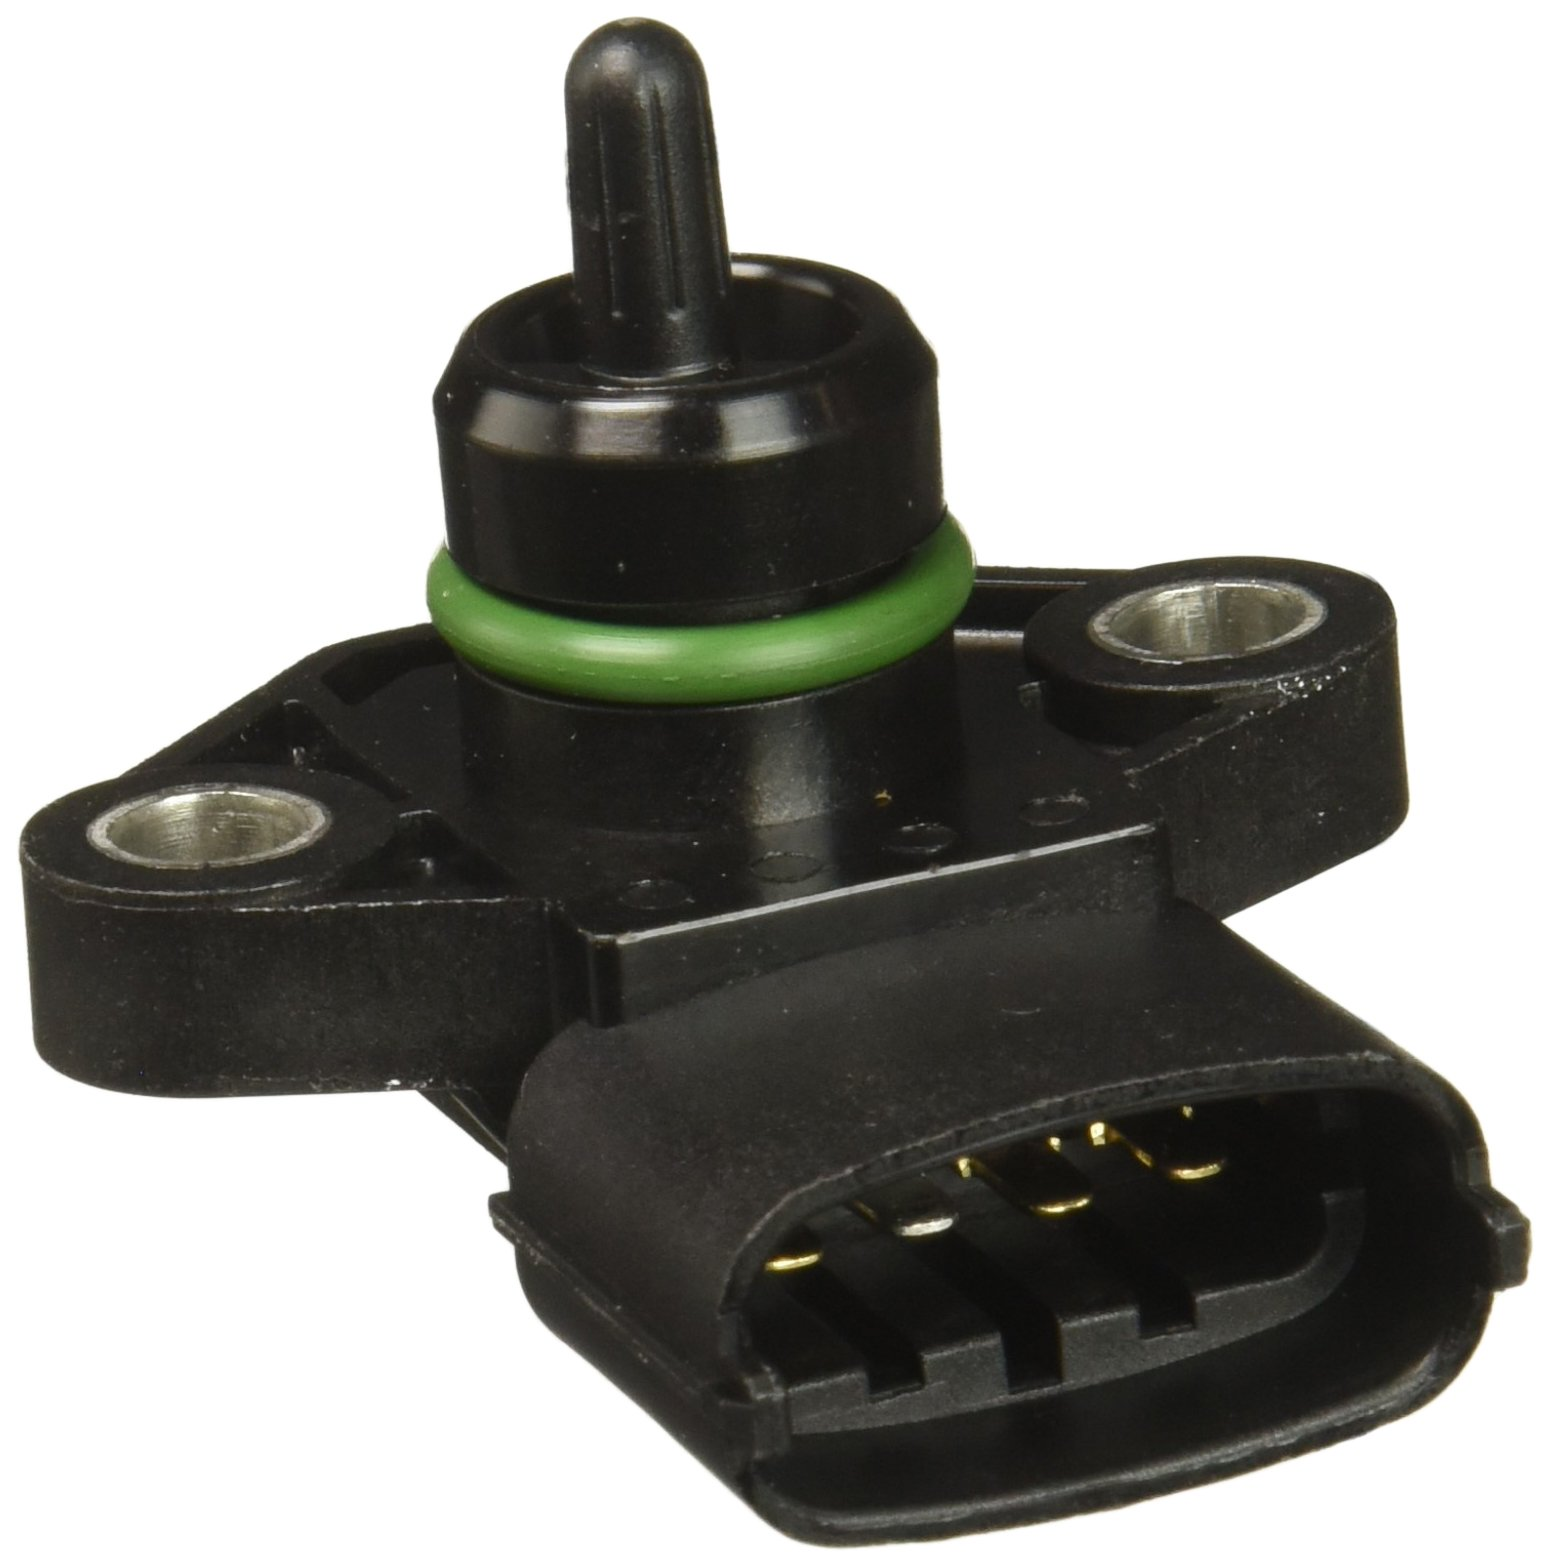 Genuine Hyundai 39300-84400 Turbo Pressure Sensor by HYUNDAI